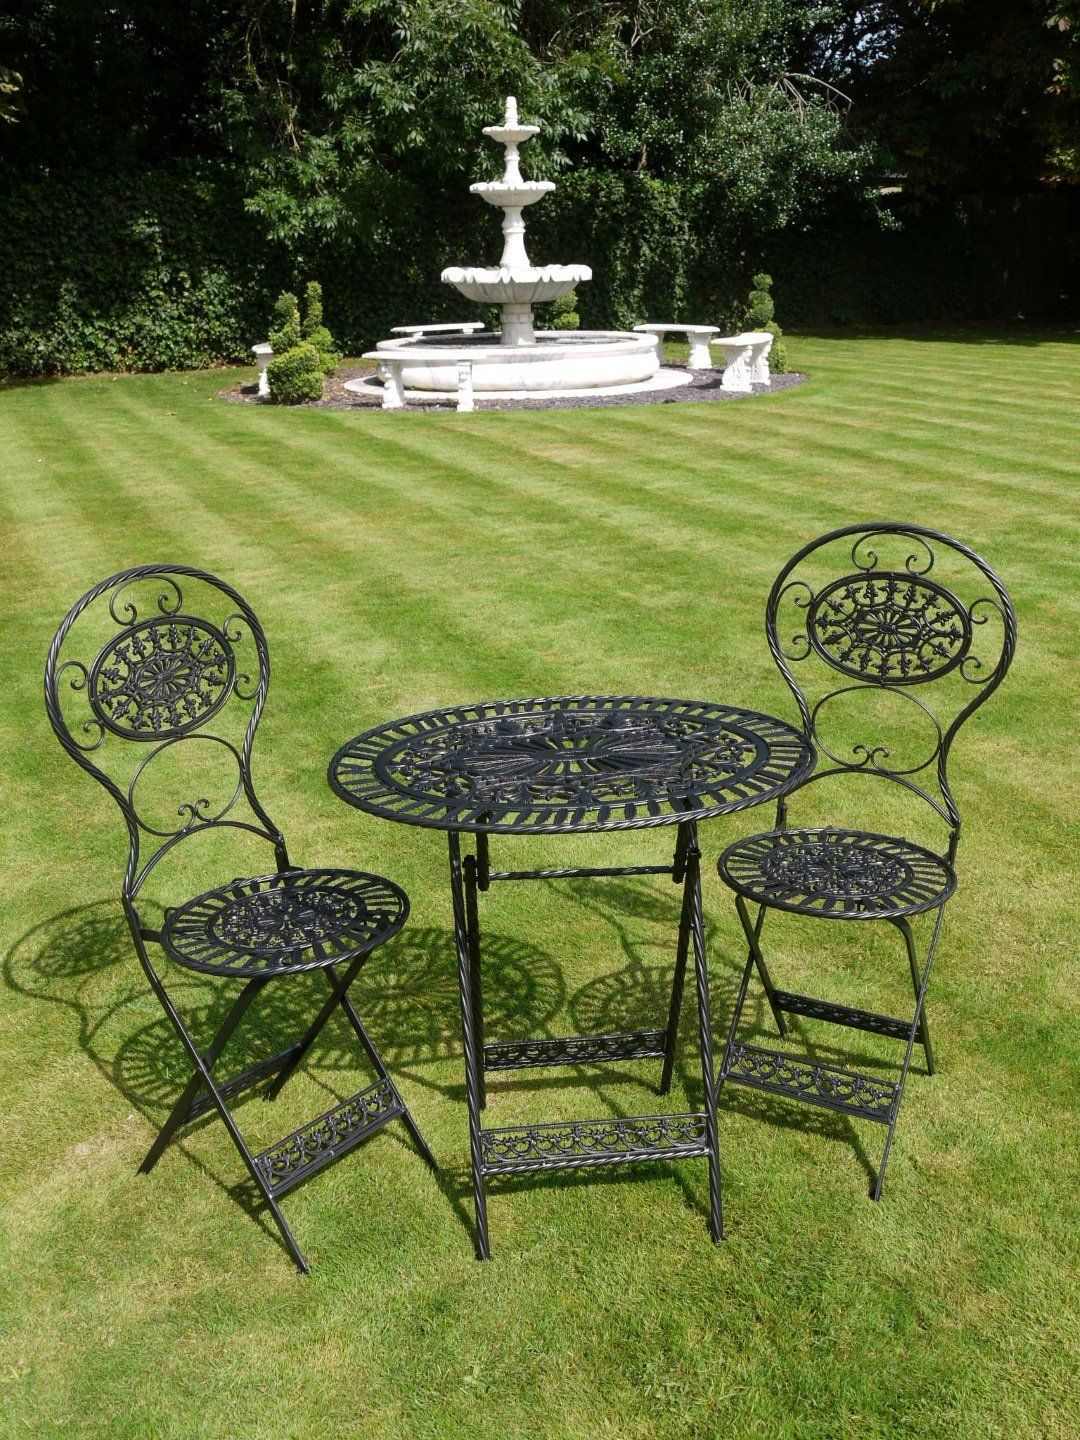 Black Wrought Iron 3 Piece Bistro Style Garden Patio Furniture Set Co Uk Outdoors